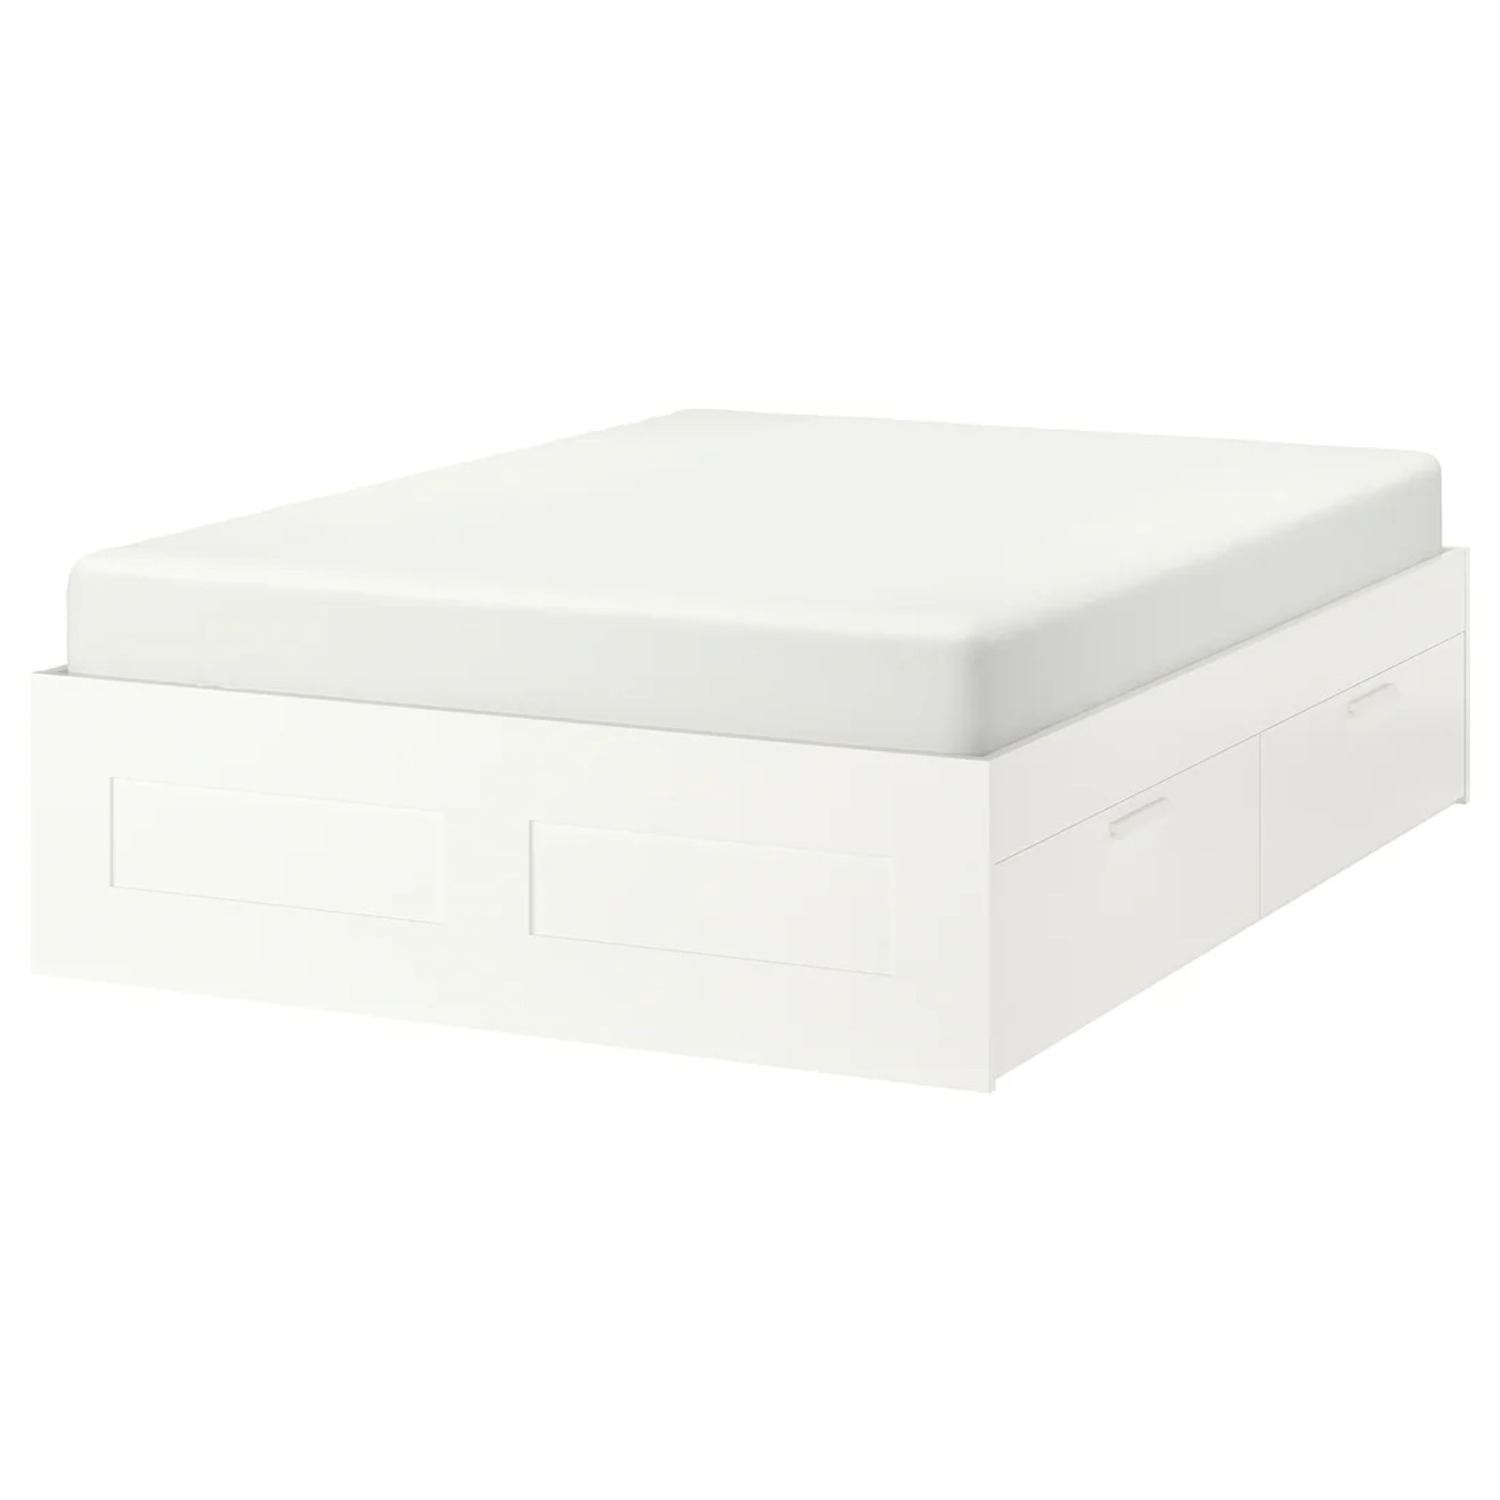 IKEA Brimnes Full Bed Frame with 4 Drawers - image-0